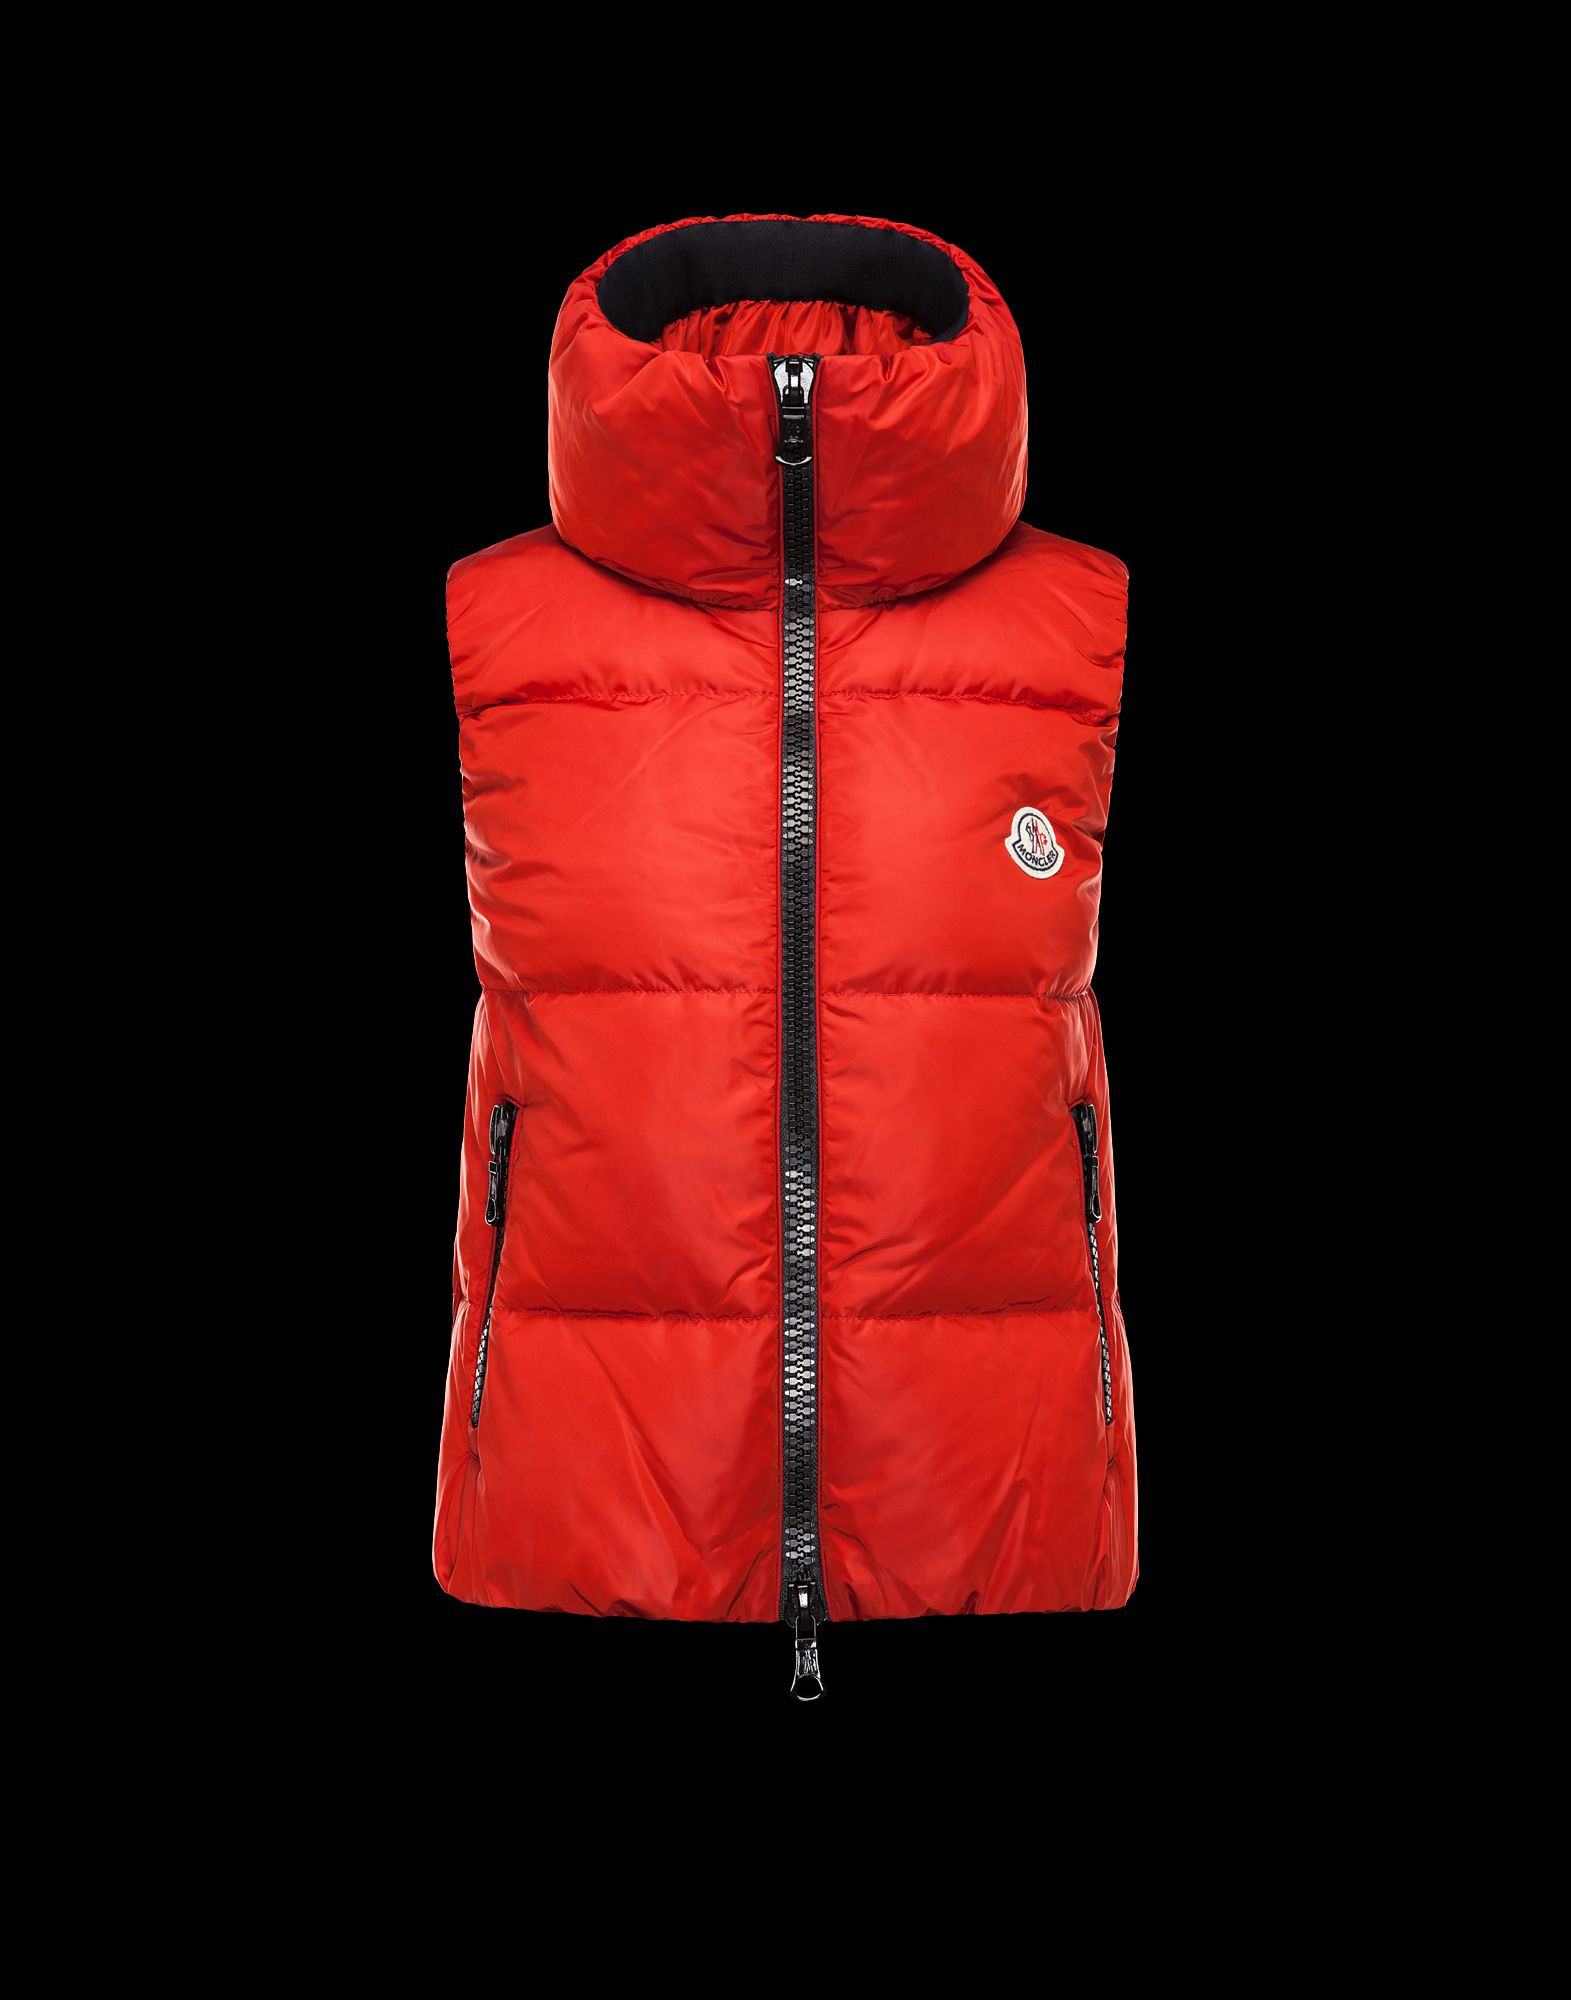 MONCLER PETY Women's Sleeveless Jacket Red